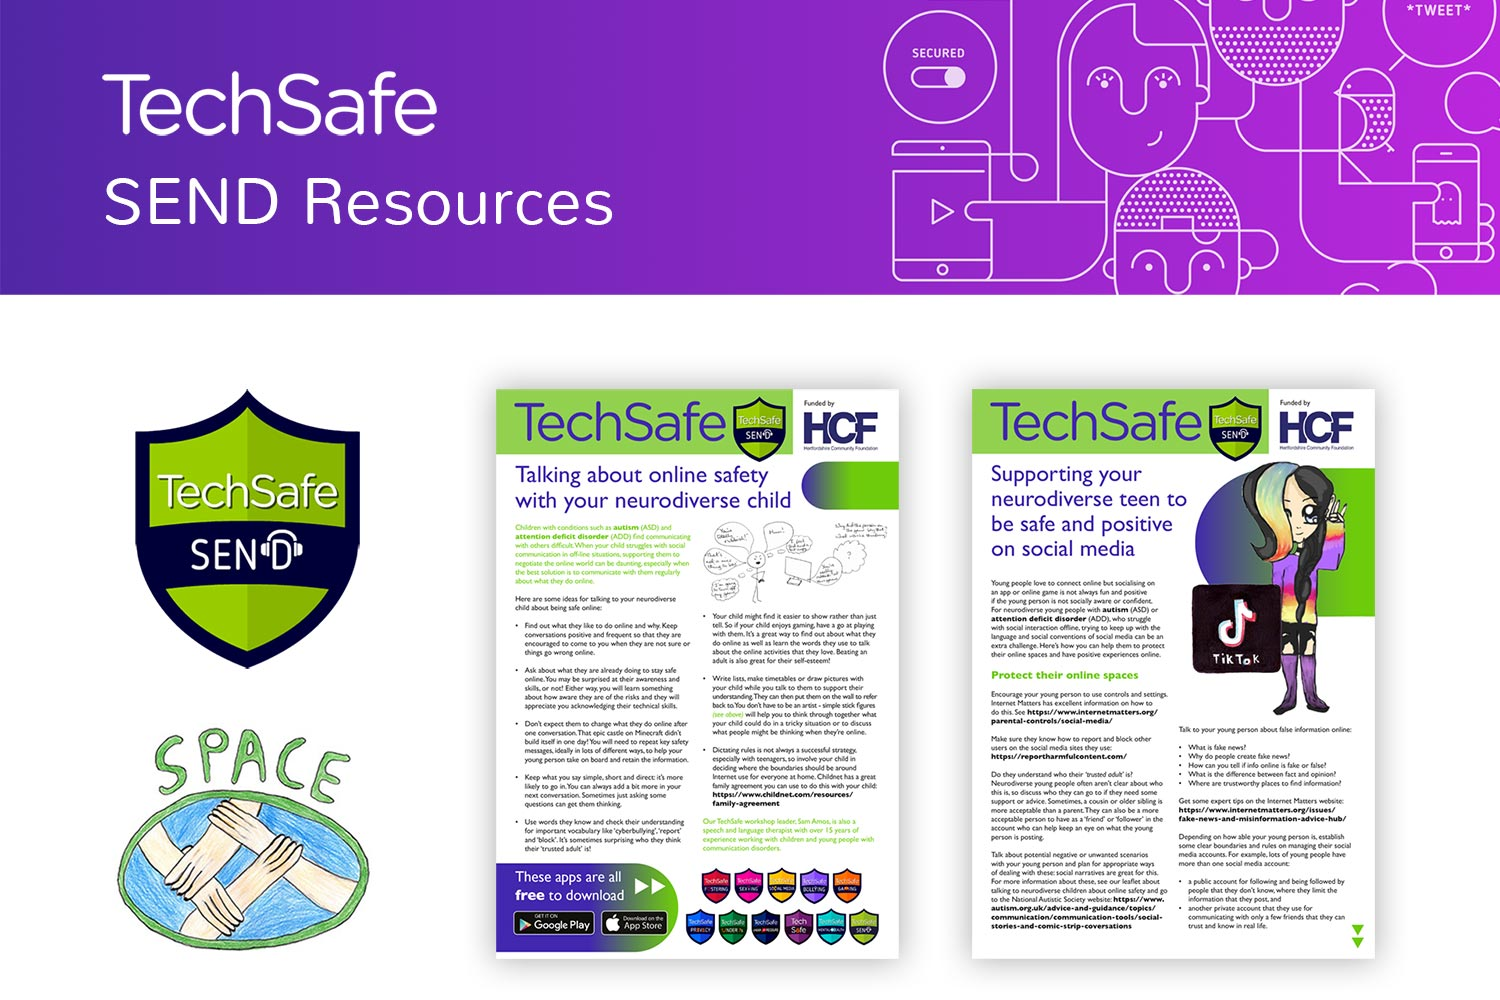 techsafe news send resources